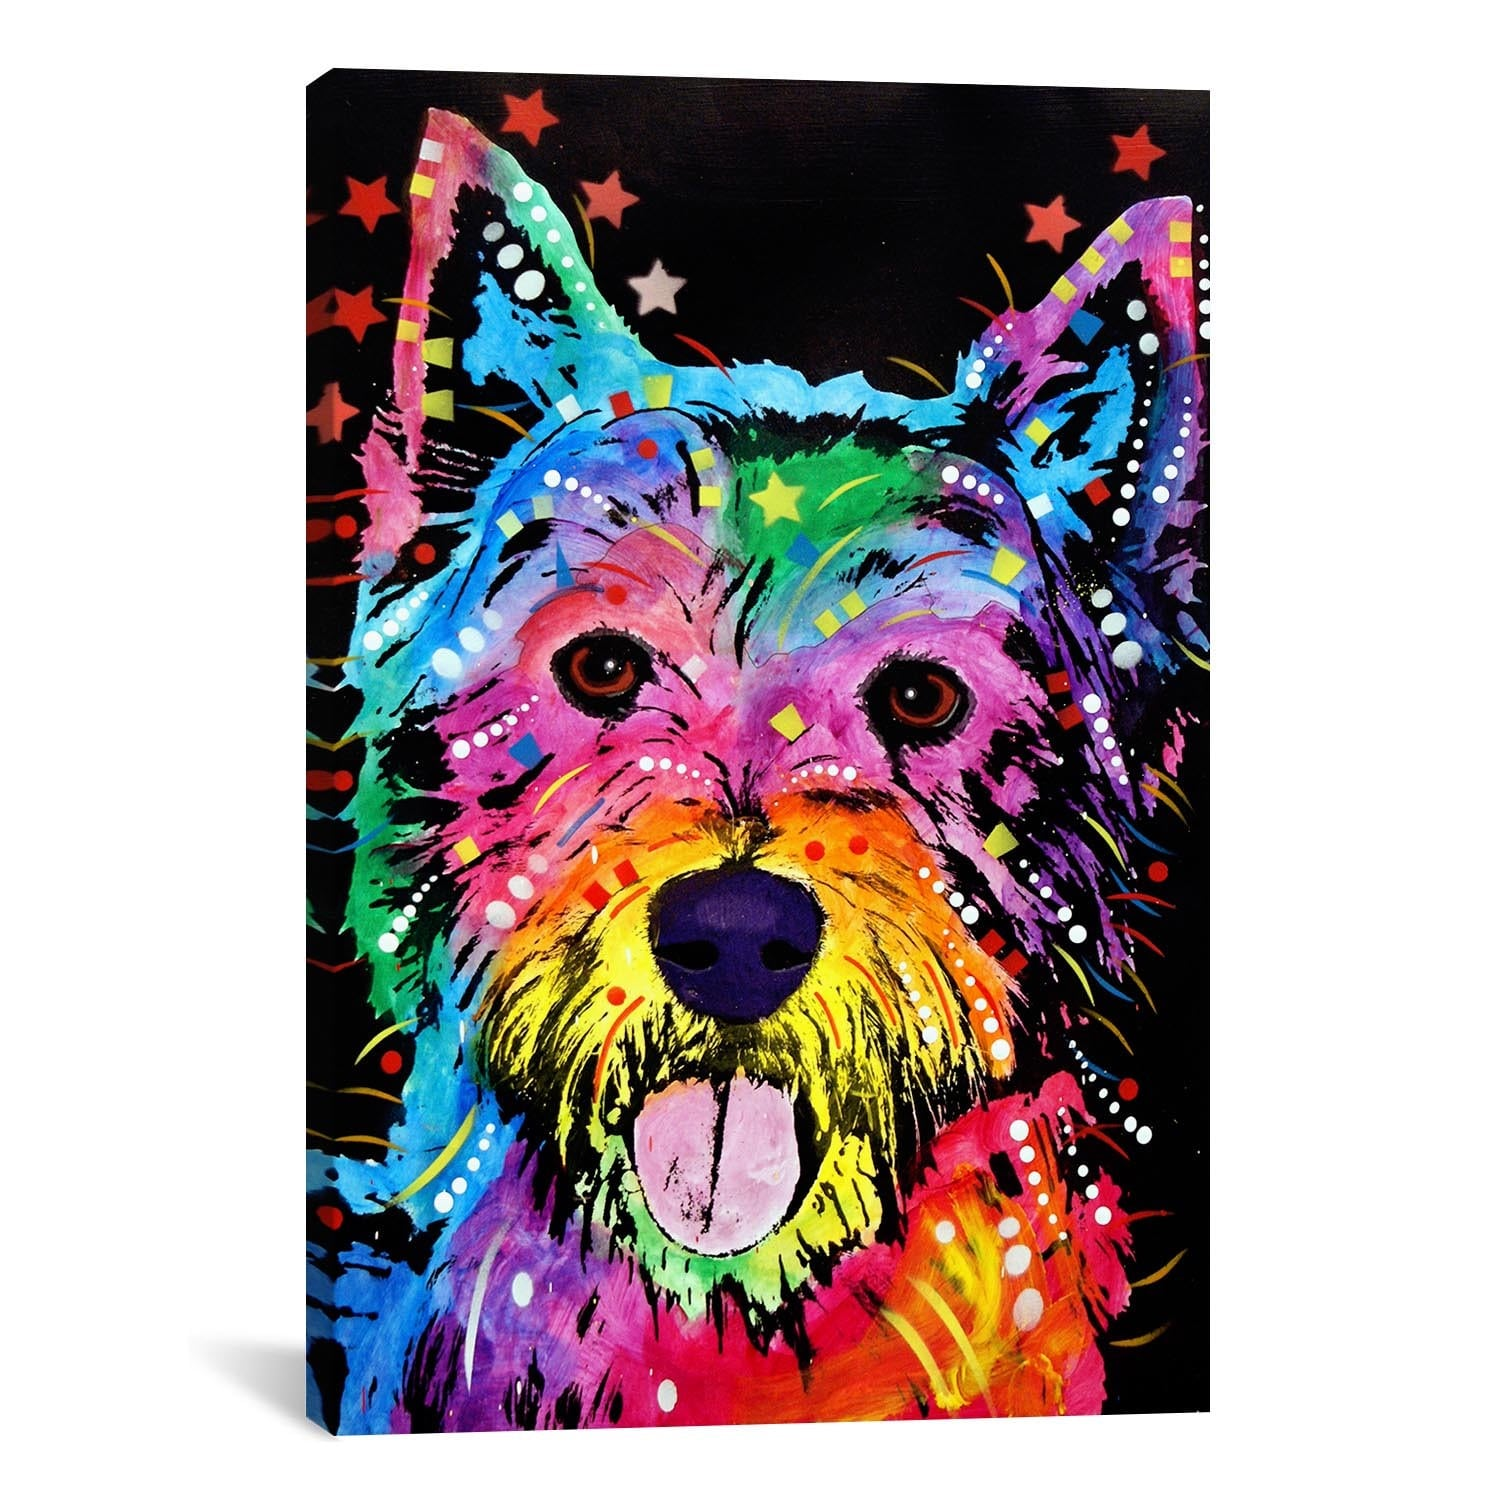 West Highland Terrier (Westie) - Dean Russo Art. Dog Signs of Dog Breeds. Dog Prints on Wood. Gifts for Dog Lovers.